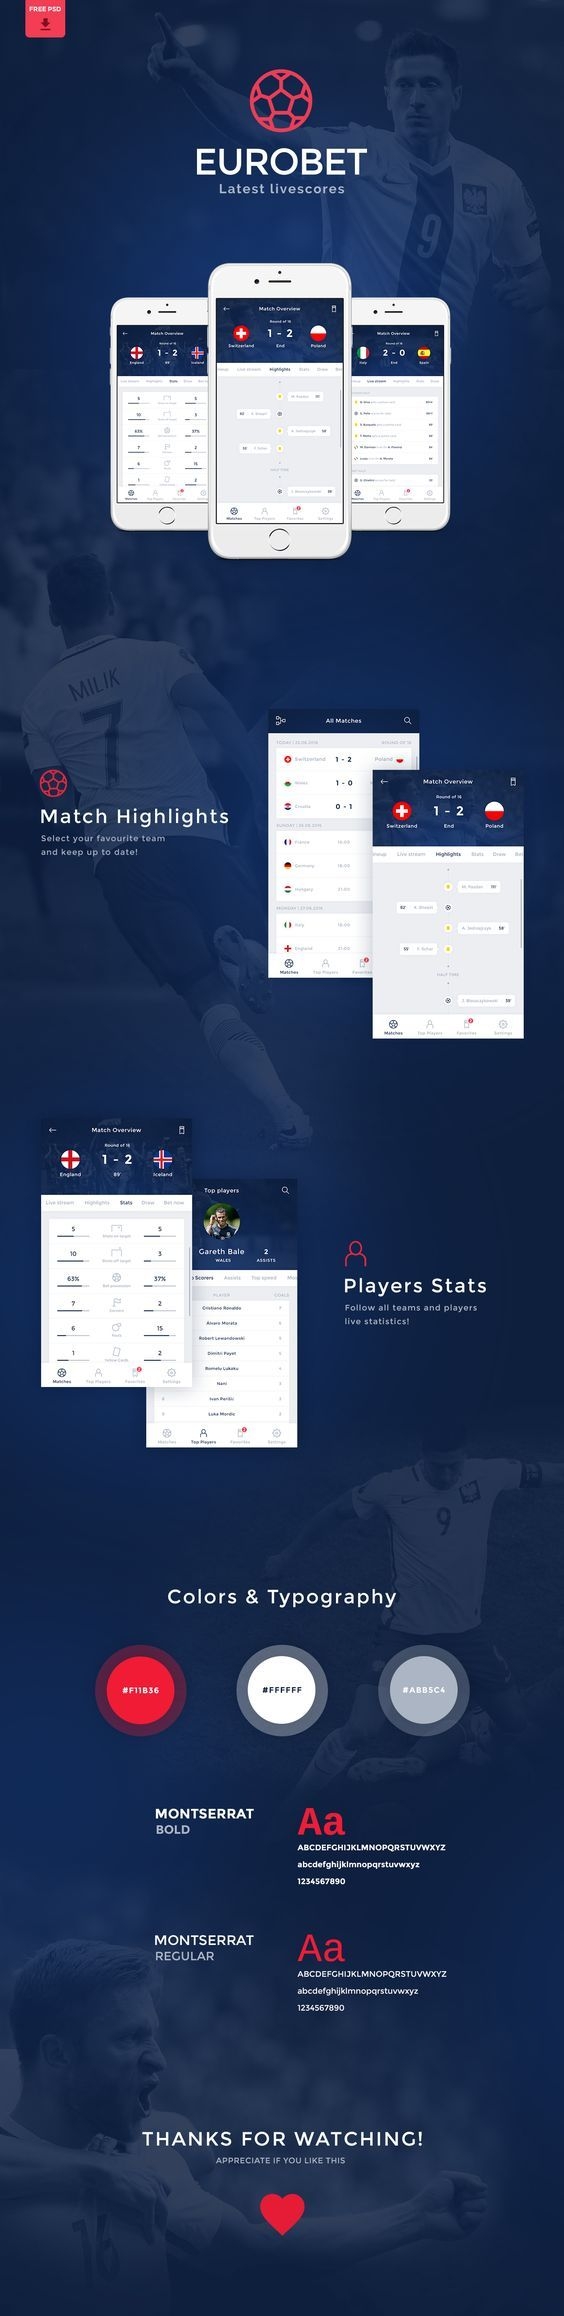 Get the latest championship scores! Eurobet is free PSD Mobile App with clean fonts and elegant design. This template includes 6 screens that will provide the necessary inspiration to create your next UI project.: